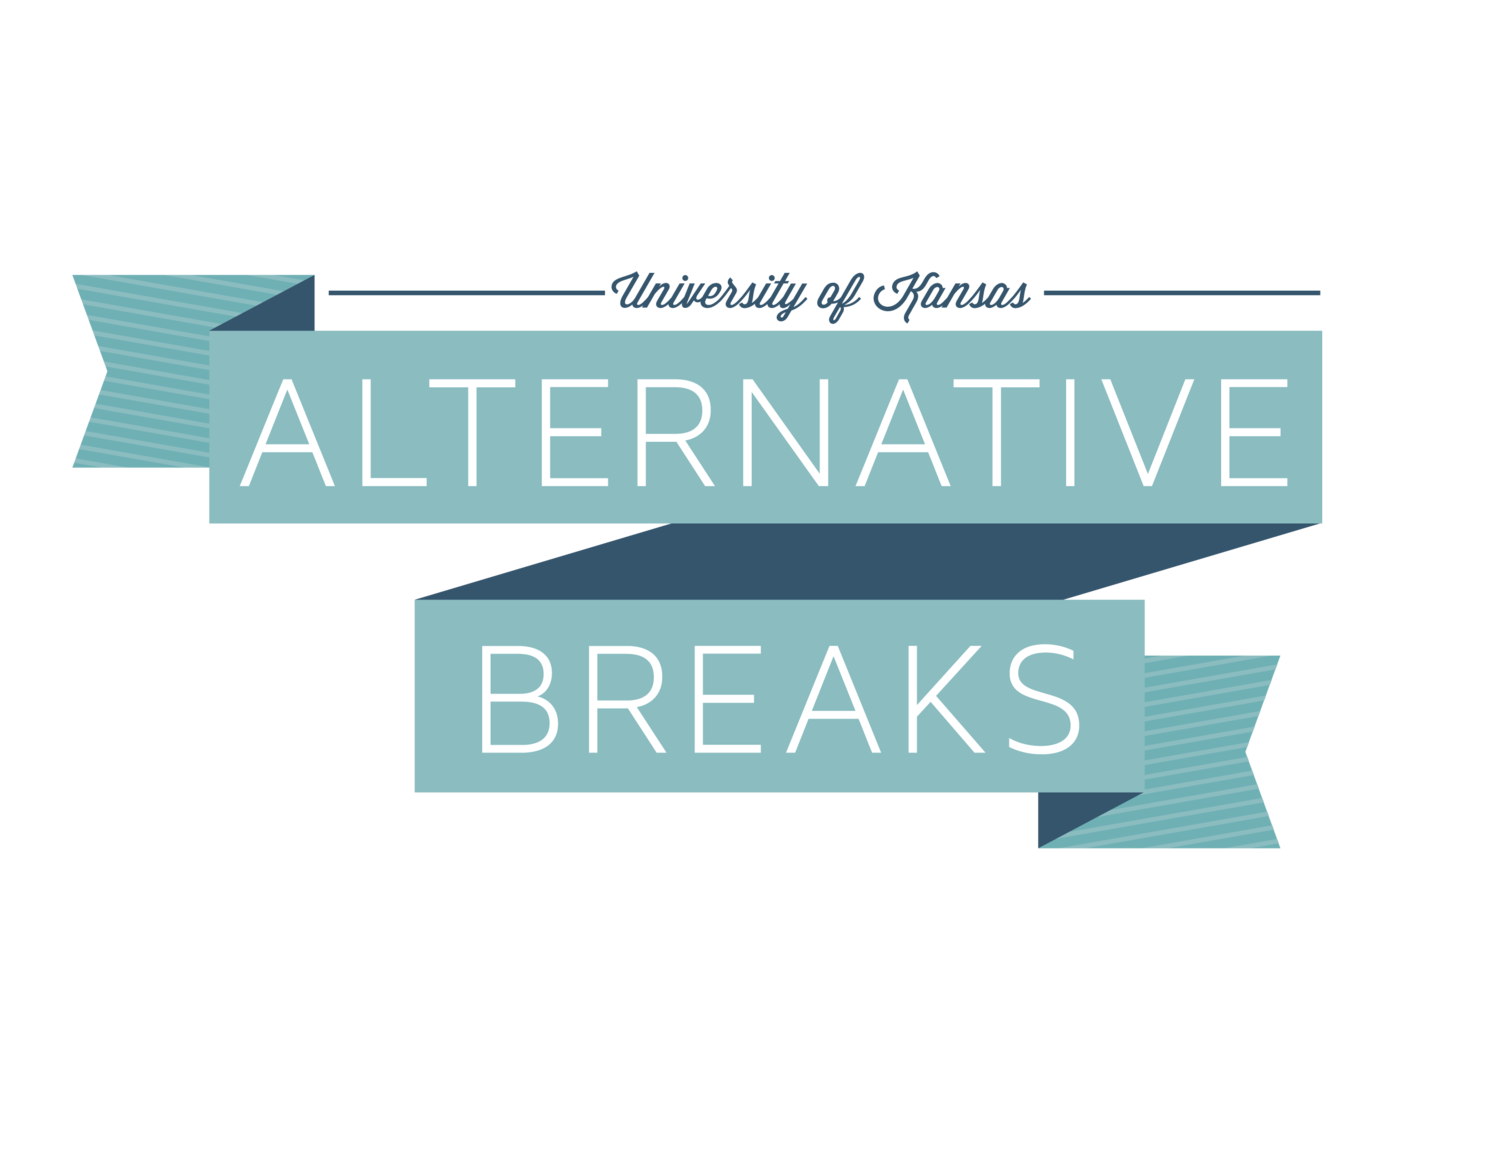 Alternative Breaks